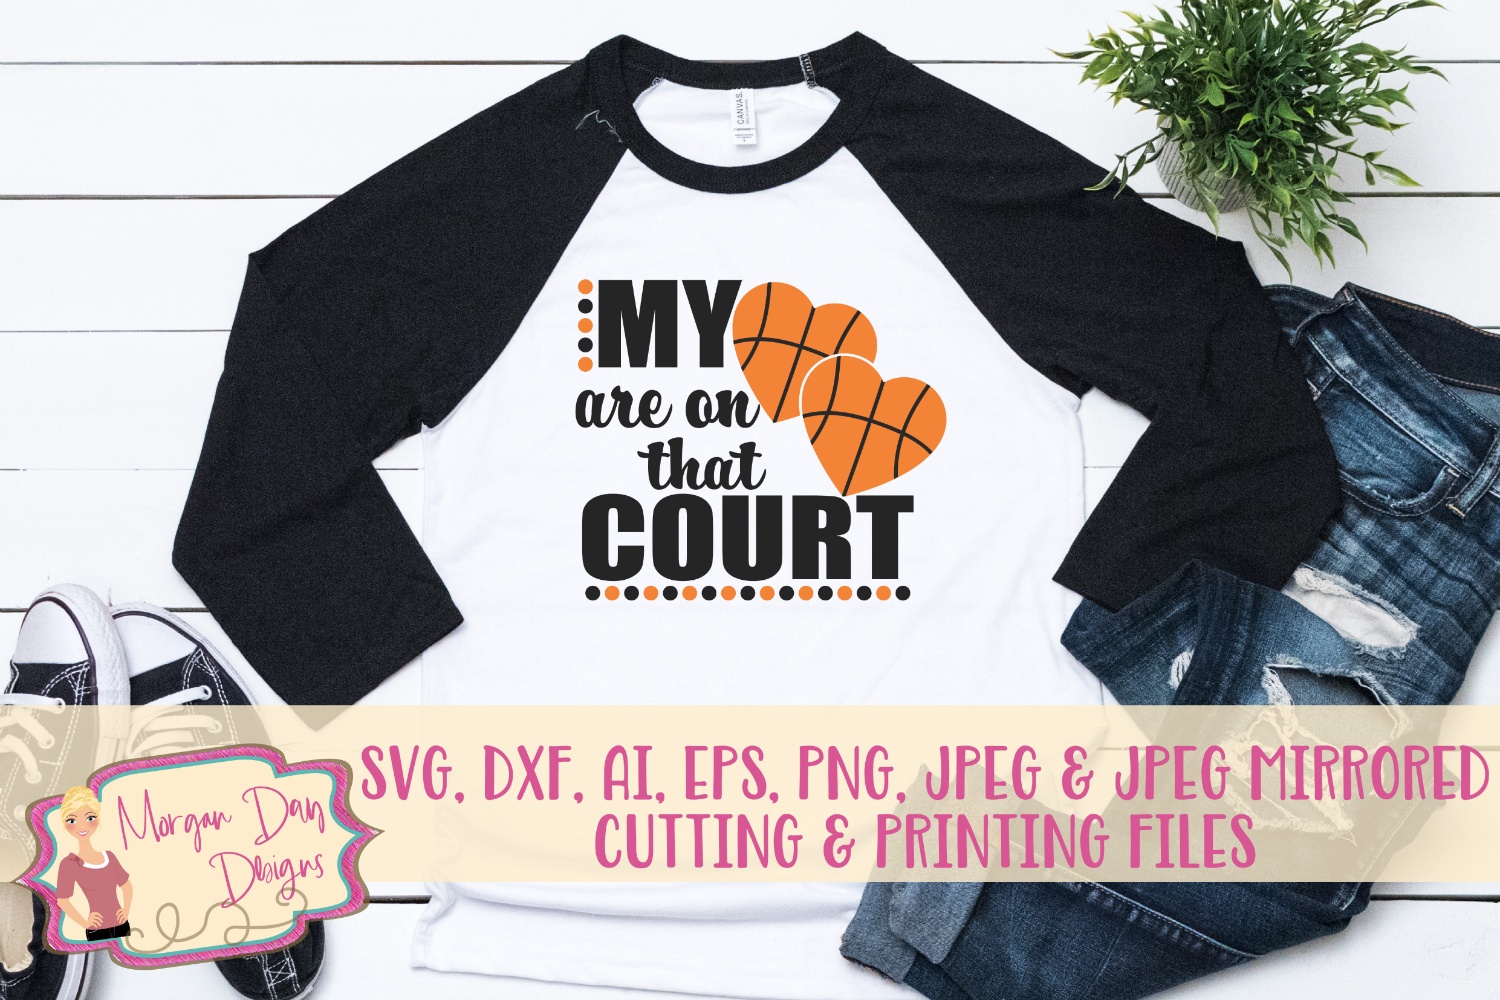 My Hearts Are On That Court SVG, DXF, AI, EPS, PNG, JPEG example image 1